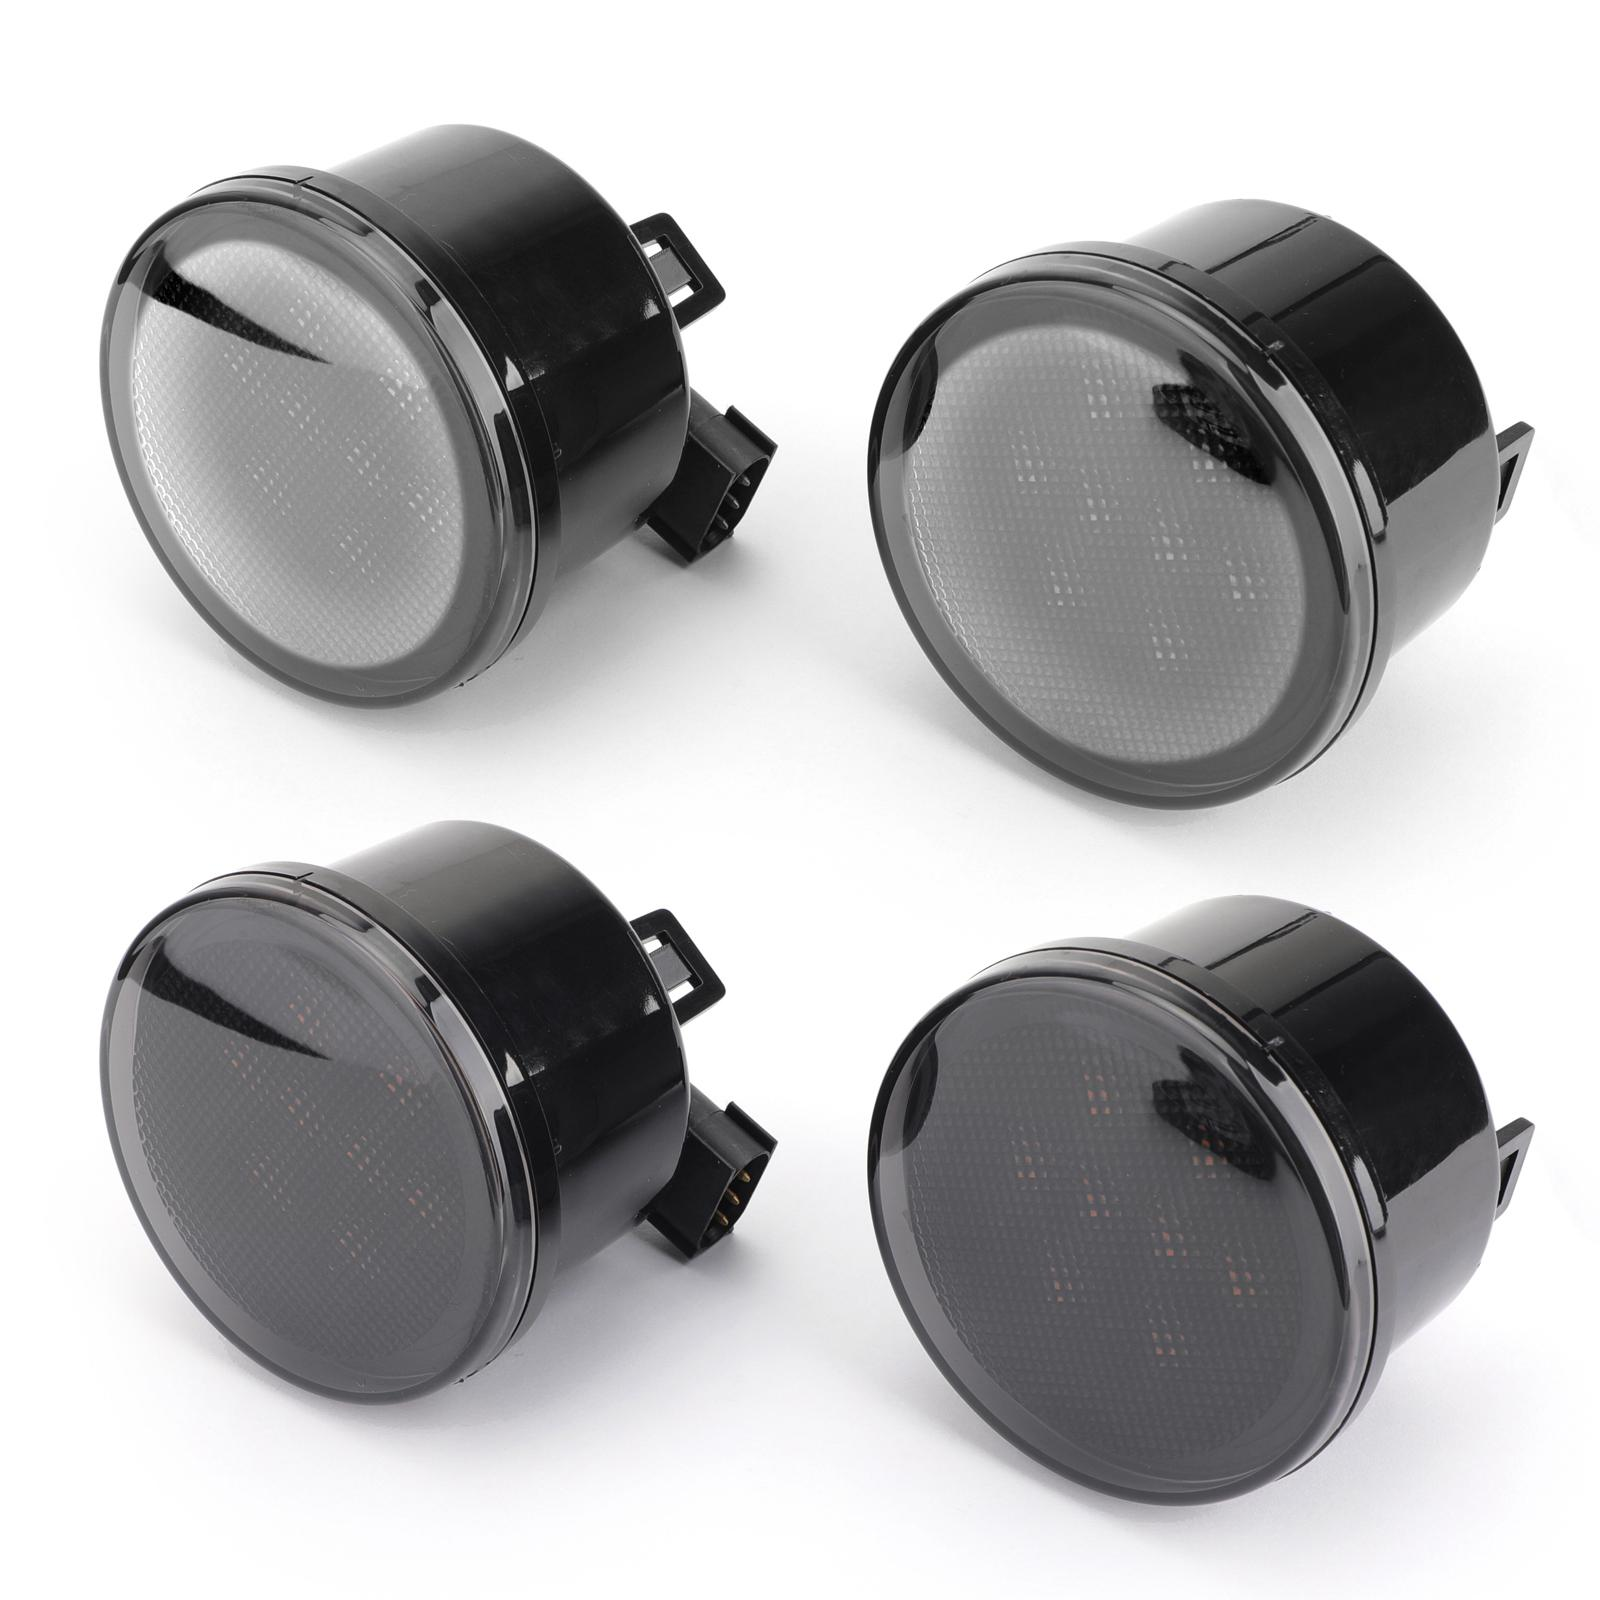 Areyourshop Car 2PCS Front Fender Lens LED Turn Signal Light Assembly Fit For Wrangler 07-15 Car Auto Accessories Parts